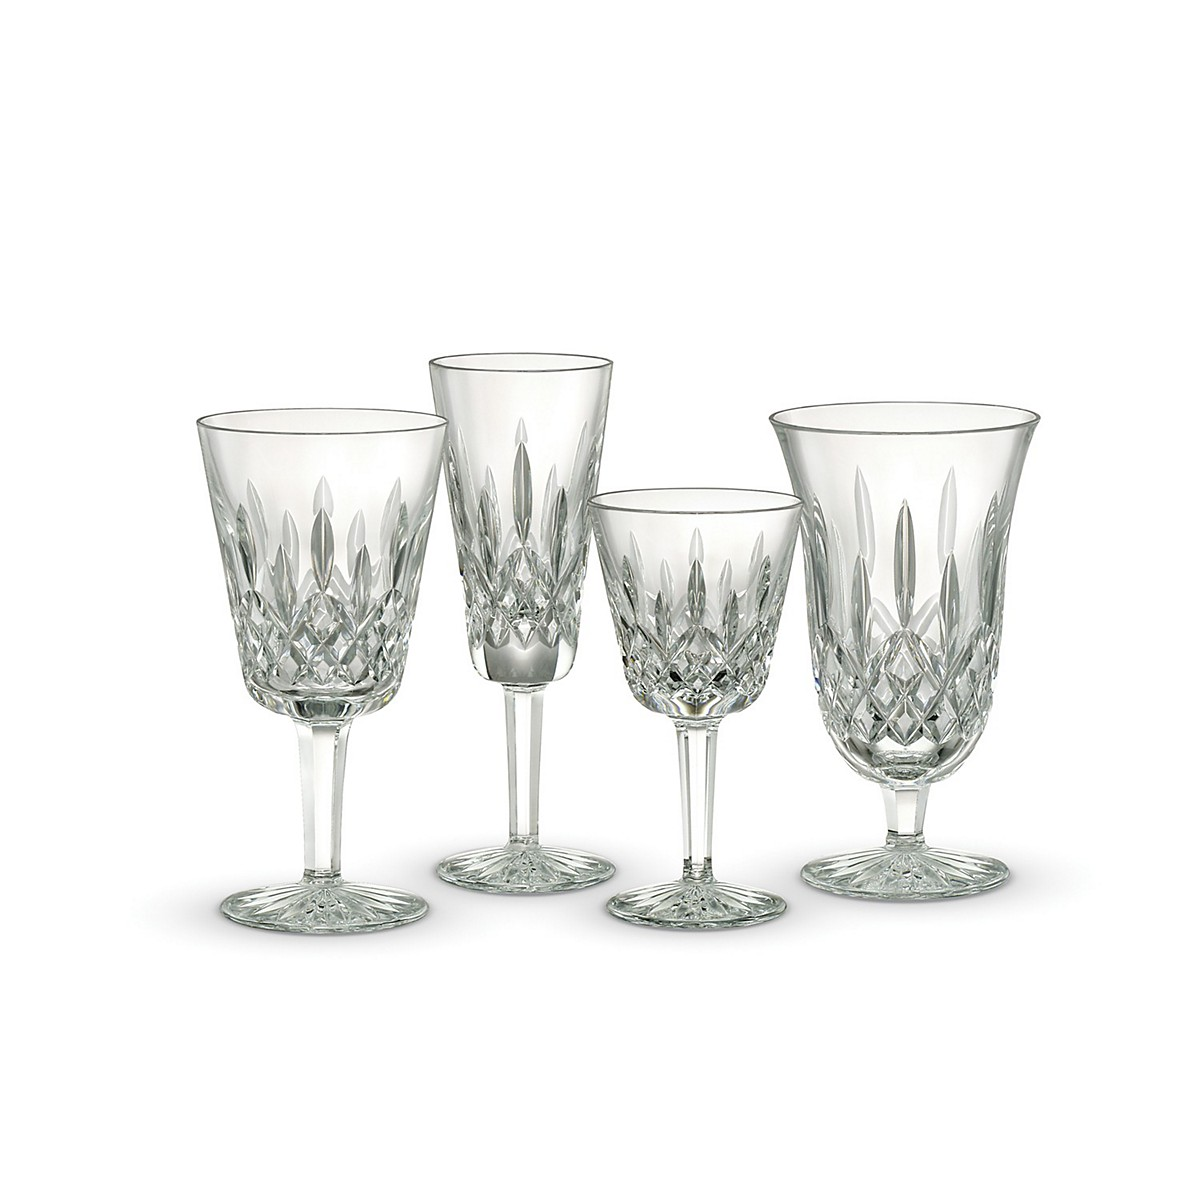 Captivating waterford lismore with lismore goblet design glass waterford lismore